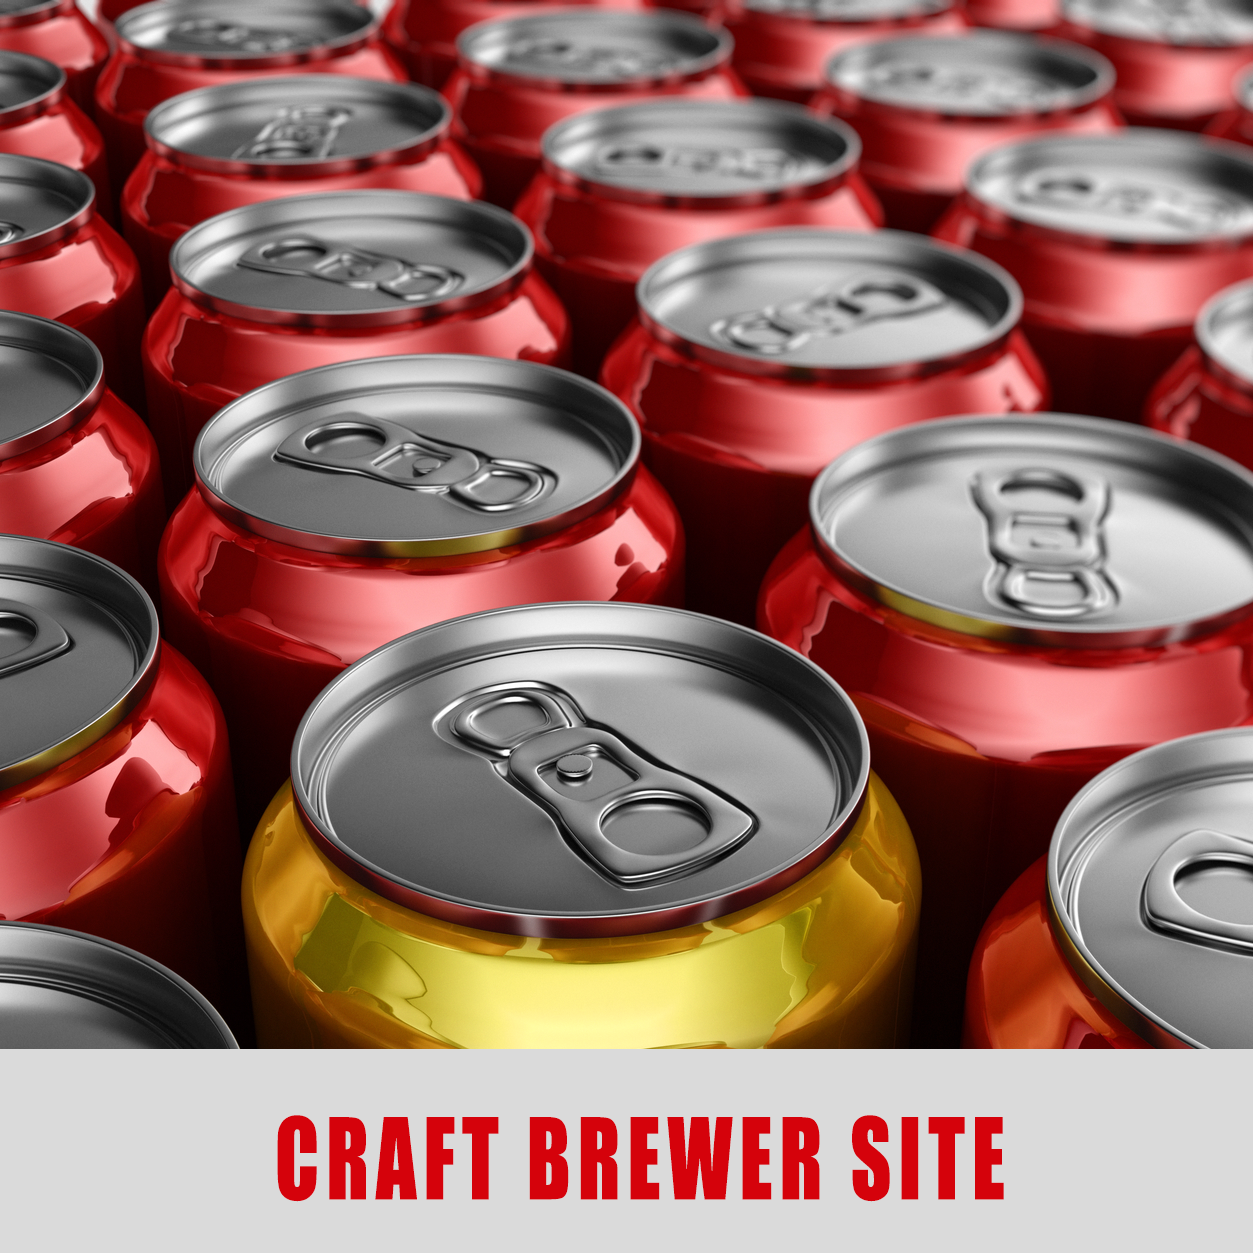 craftbrewersiteImage